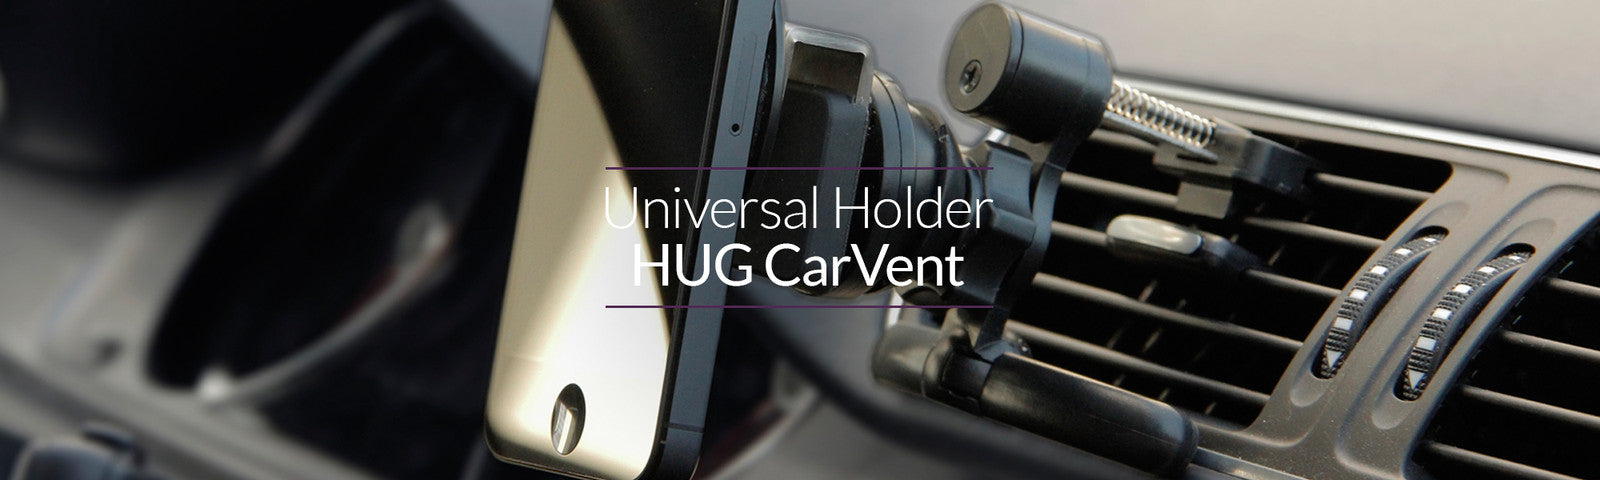 Universal Holder HUG CarVent